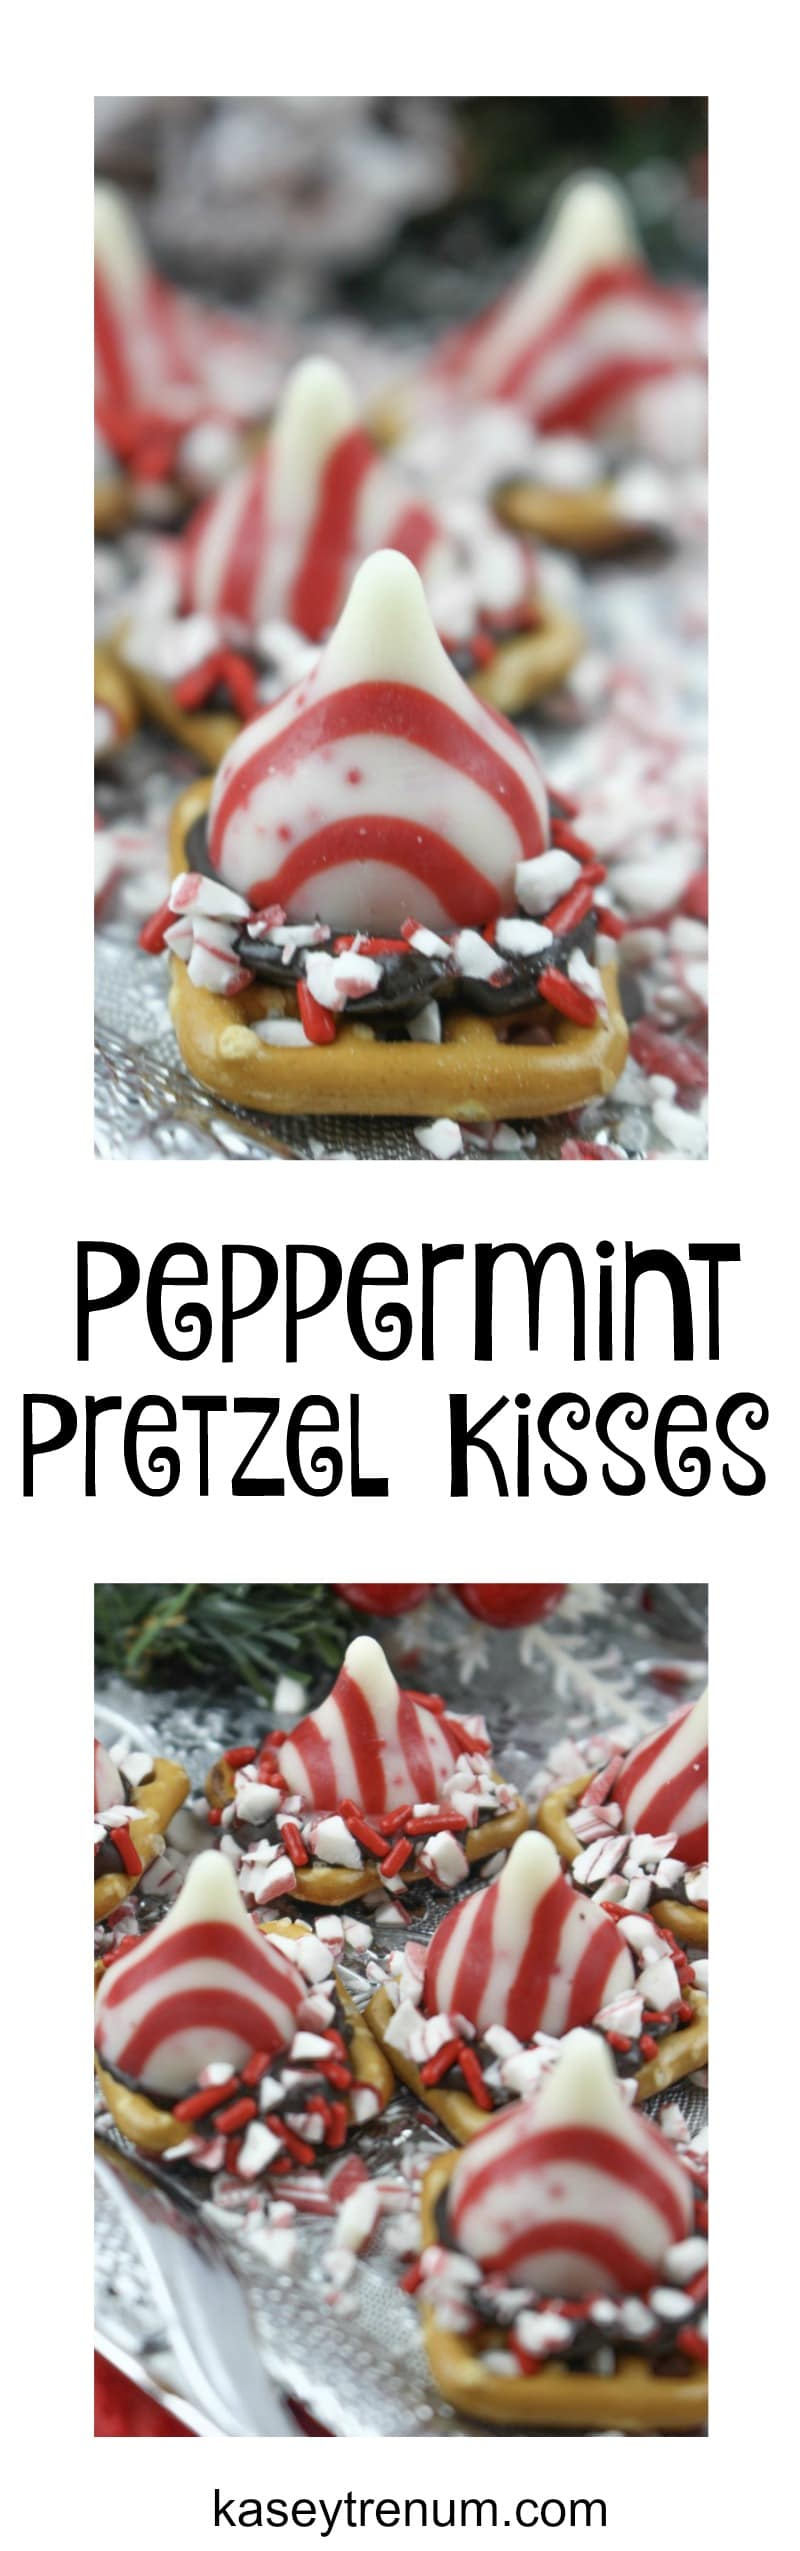 peppermint-pretzel-kisses-collage